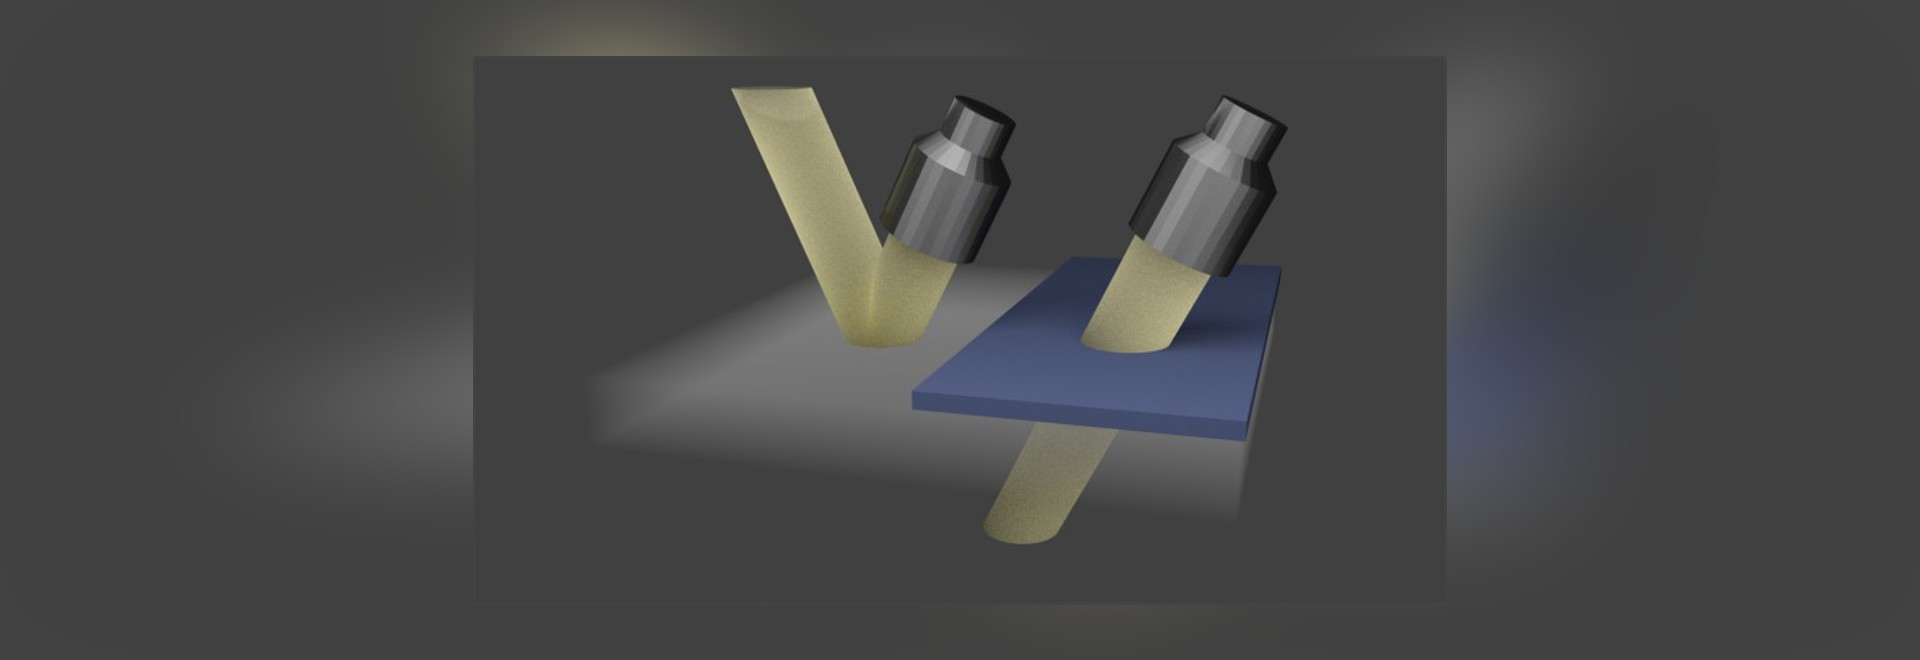 Ultrasound could see through bones thanks to novel metamaterials.